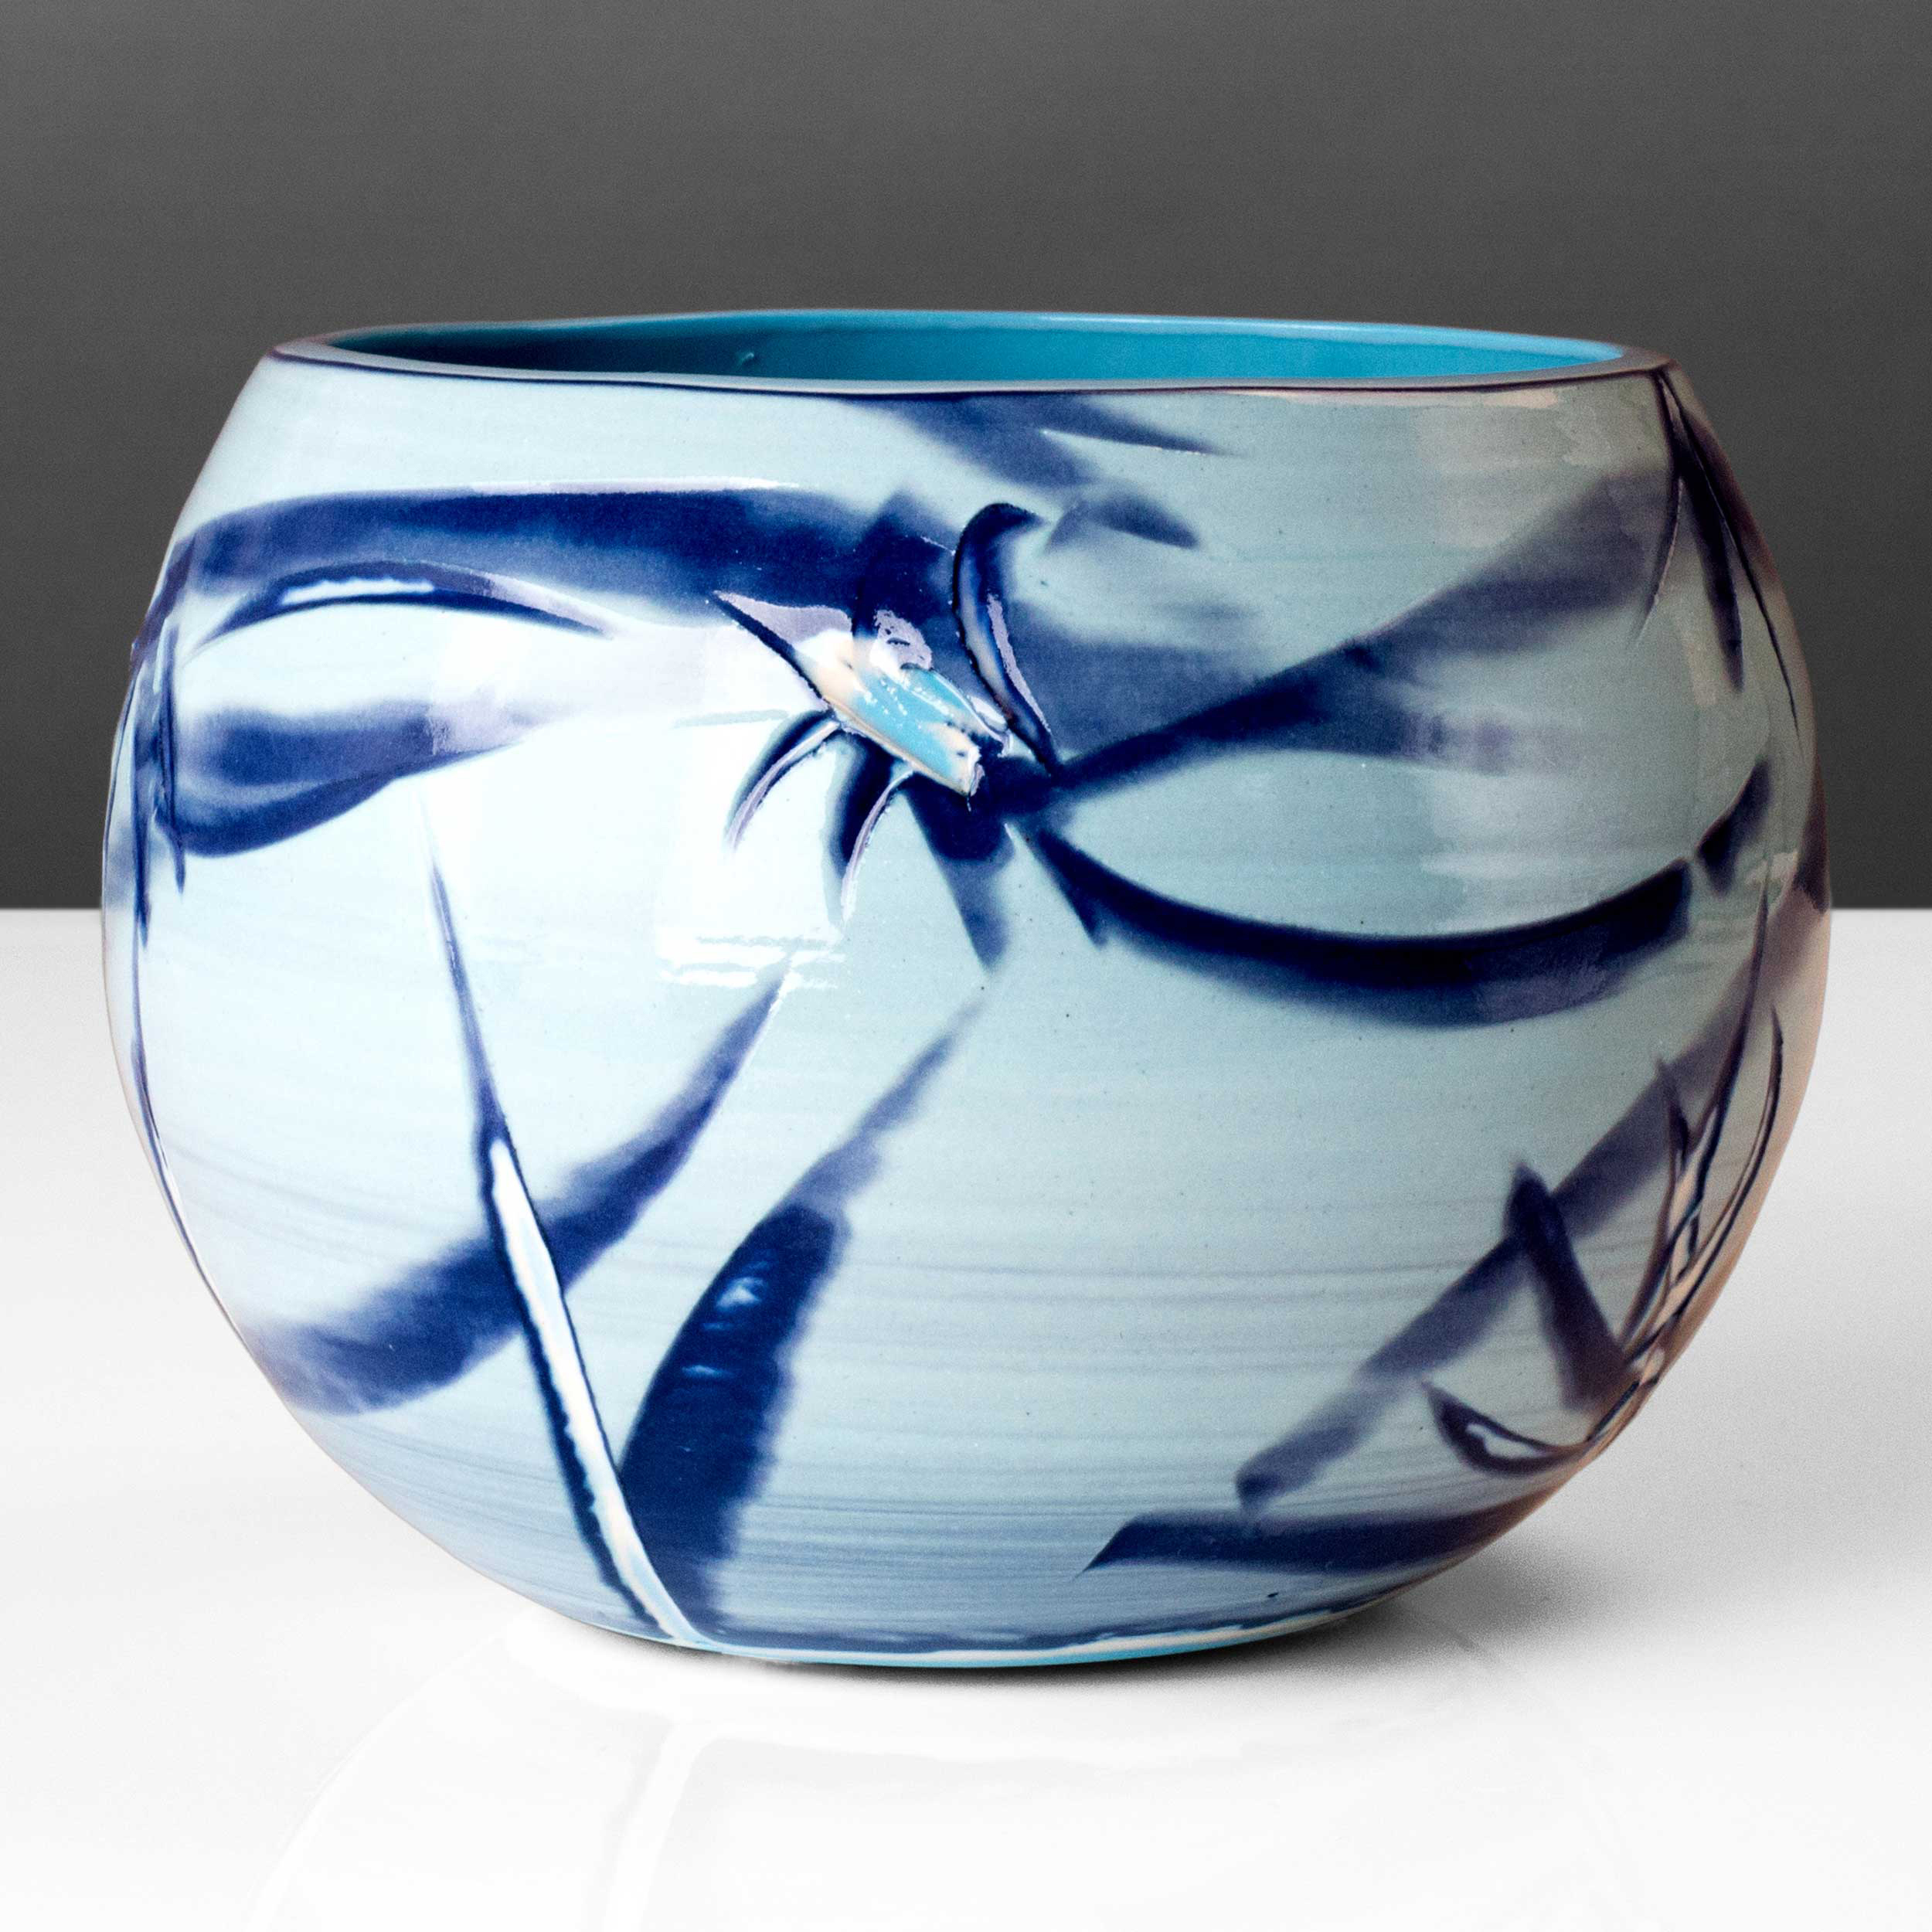 Blue Reef Series Spherical Bowl Vase by Rowena Gilbert